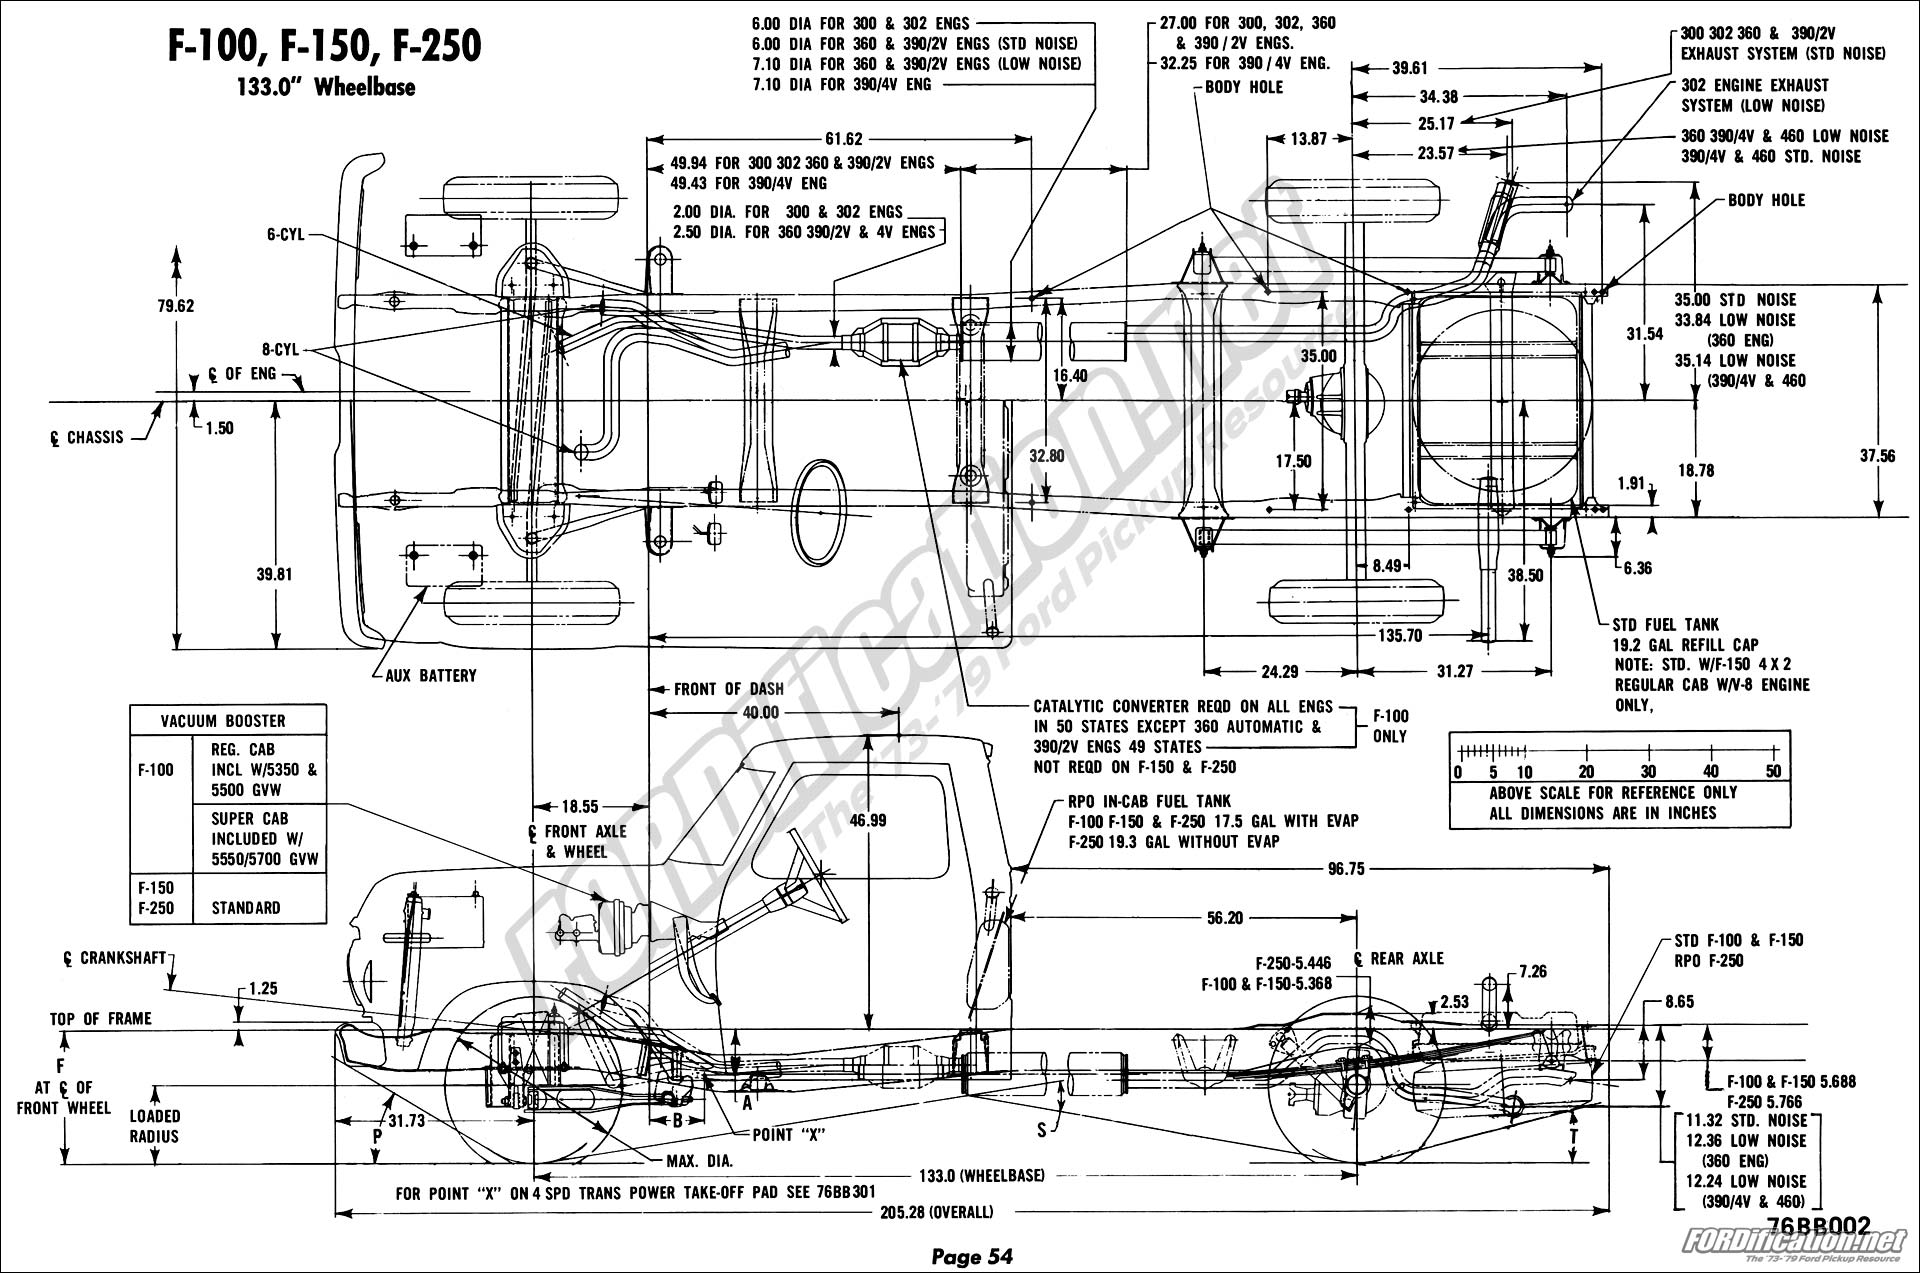 Ford f 150 body diagram wiring info 1976 ford body builder s layout book fordification net rh fordification net 1993 ford f 150 wiring schematic ford f 150 wiring harness diagram asfbconference2016 Gallery